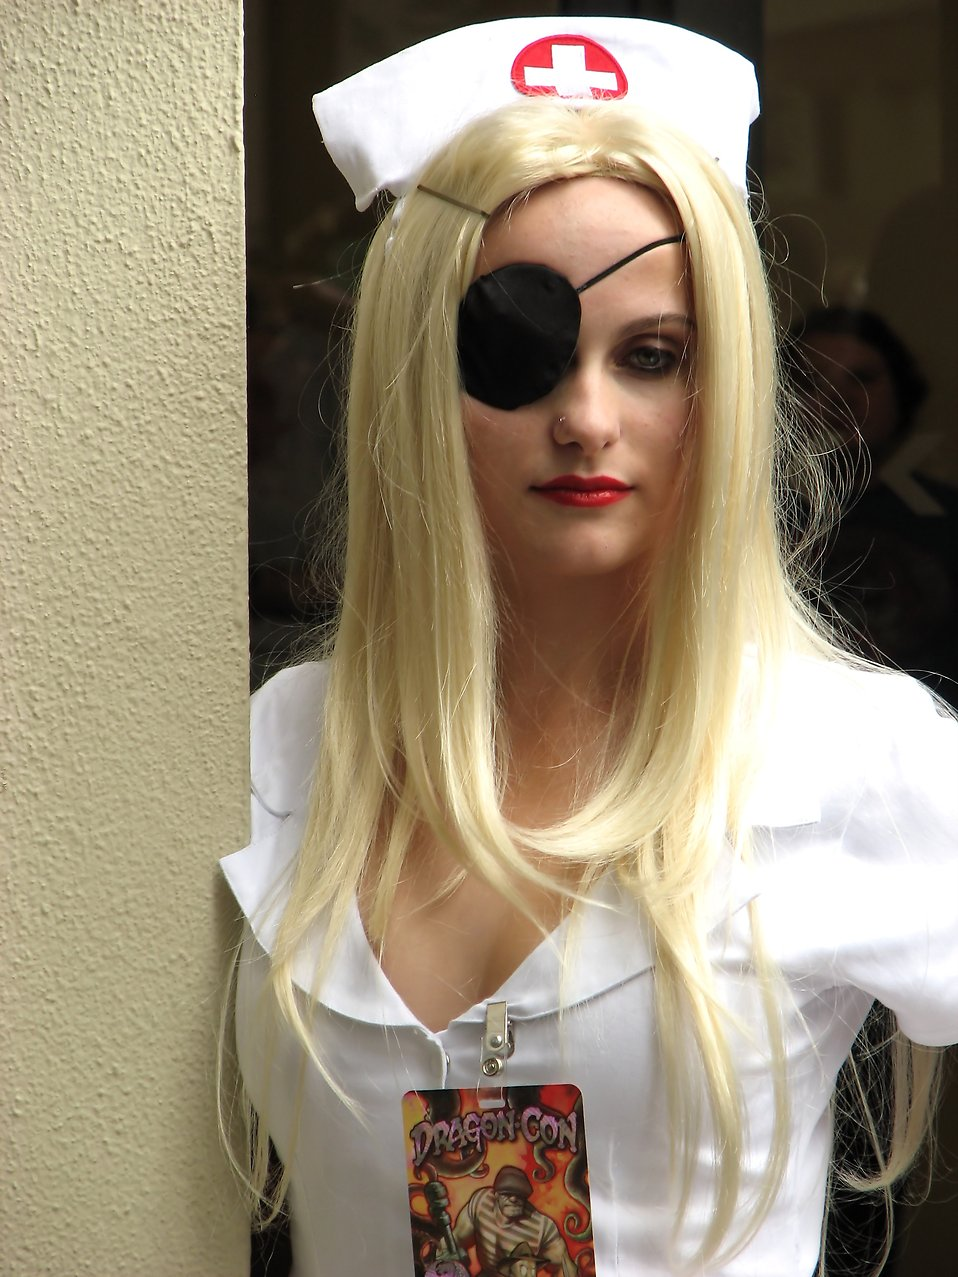 A beautiful girl in a nurse costume with an eye patch at Dragoncon 2009 in Atlanta, Georgia : Free Stock Photo